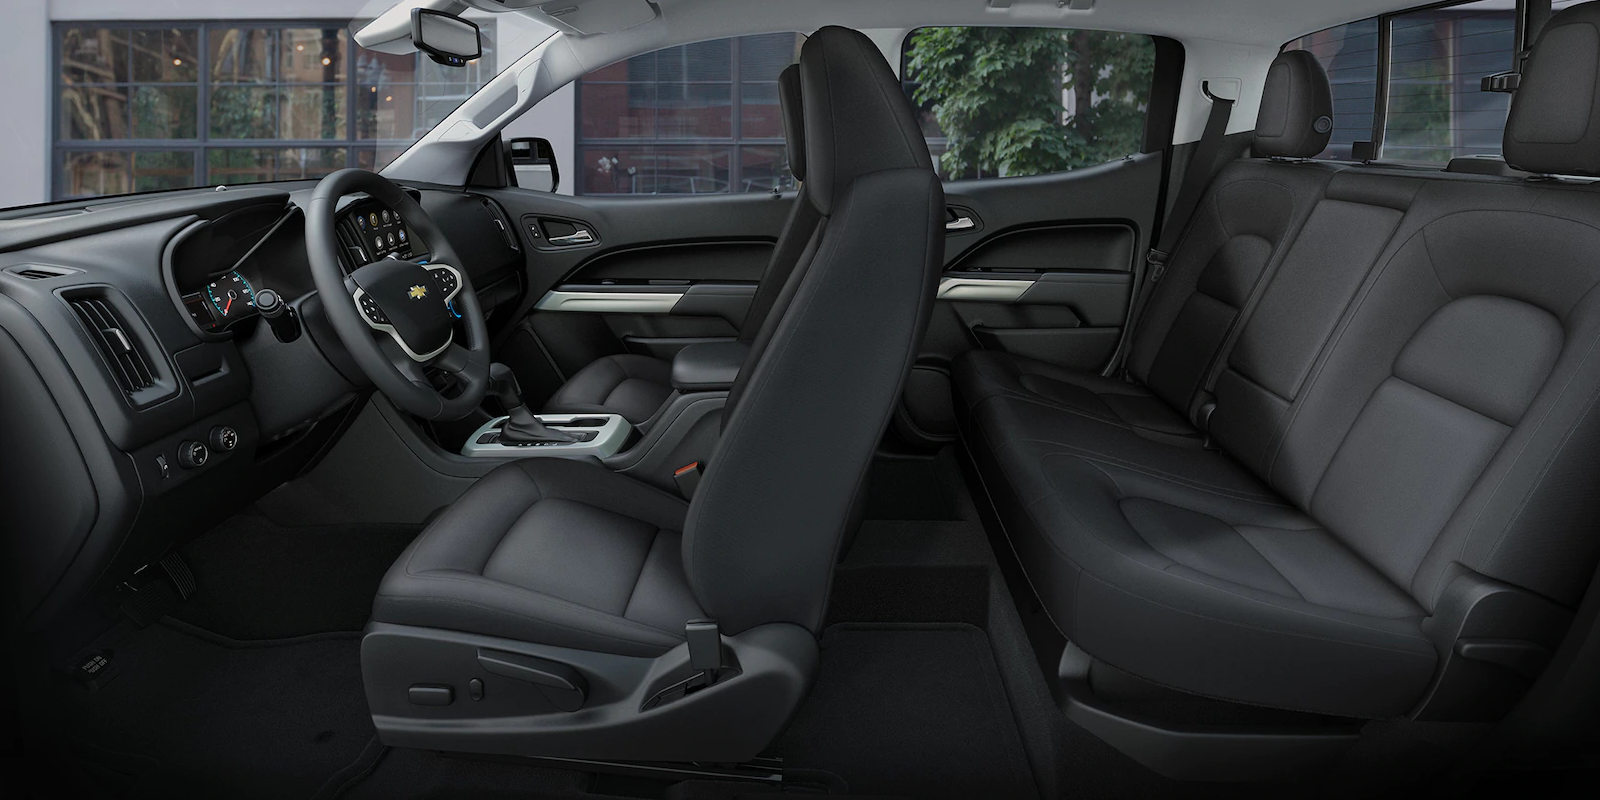 2019 Chevrolet Colorado Front Interior Picture.png